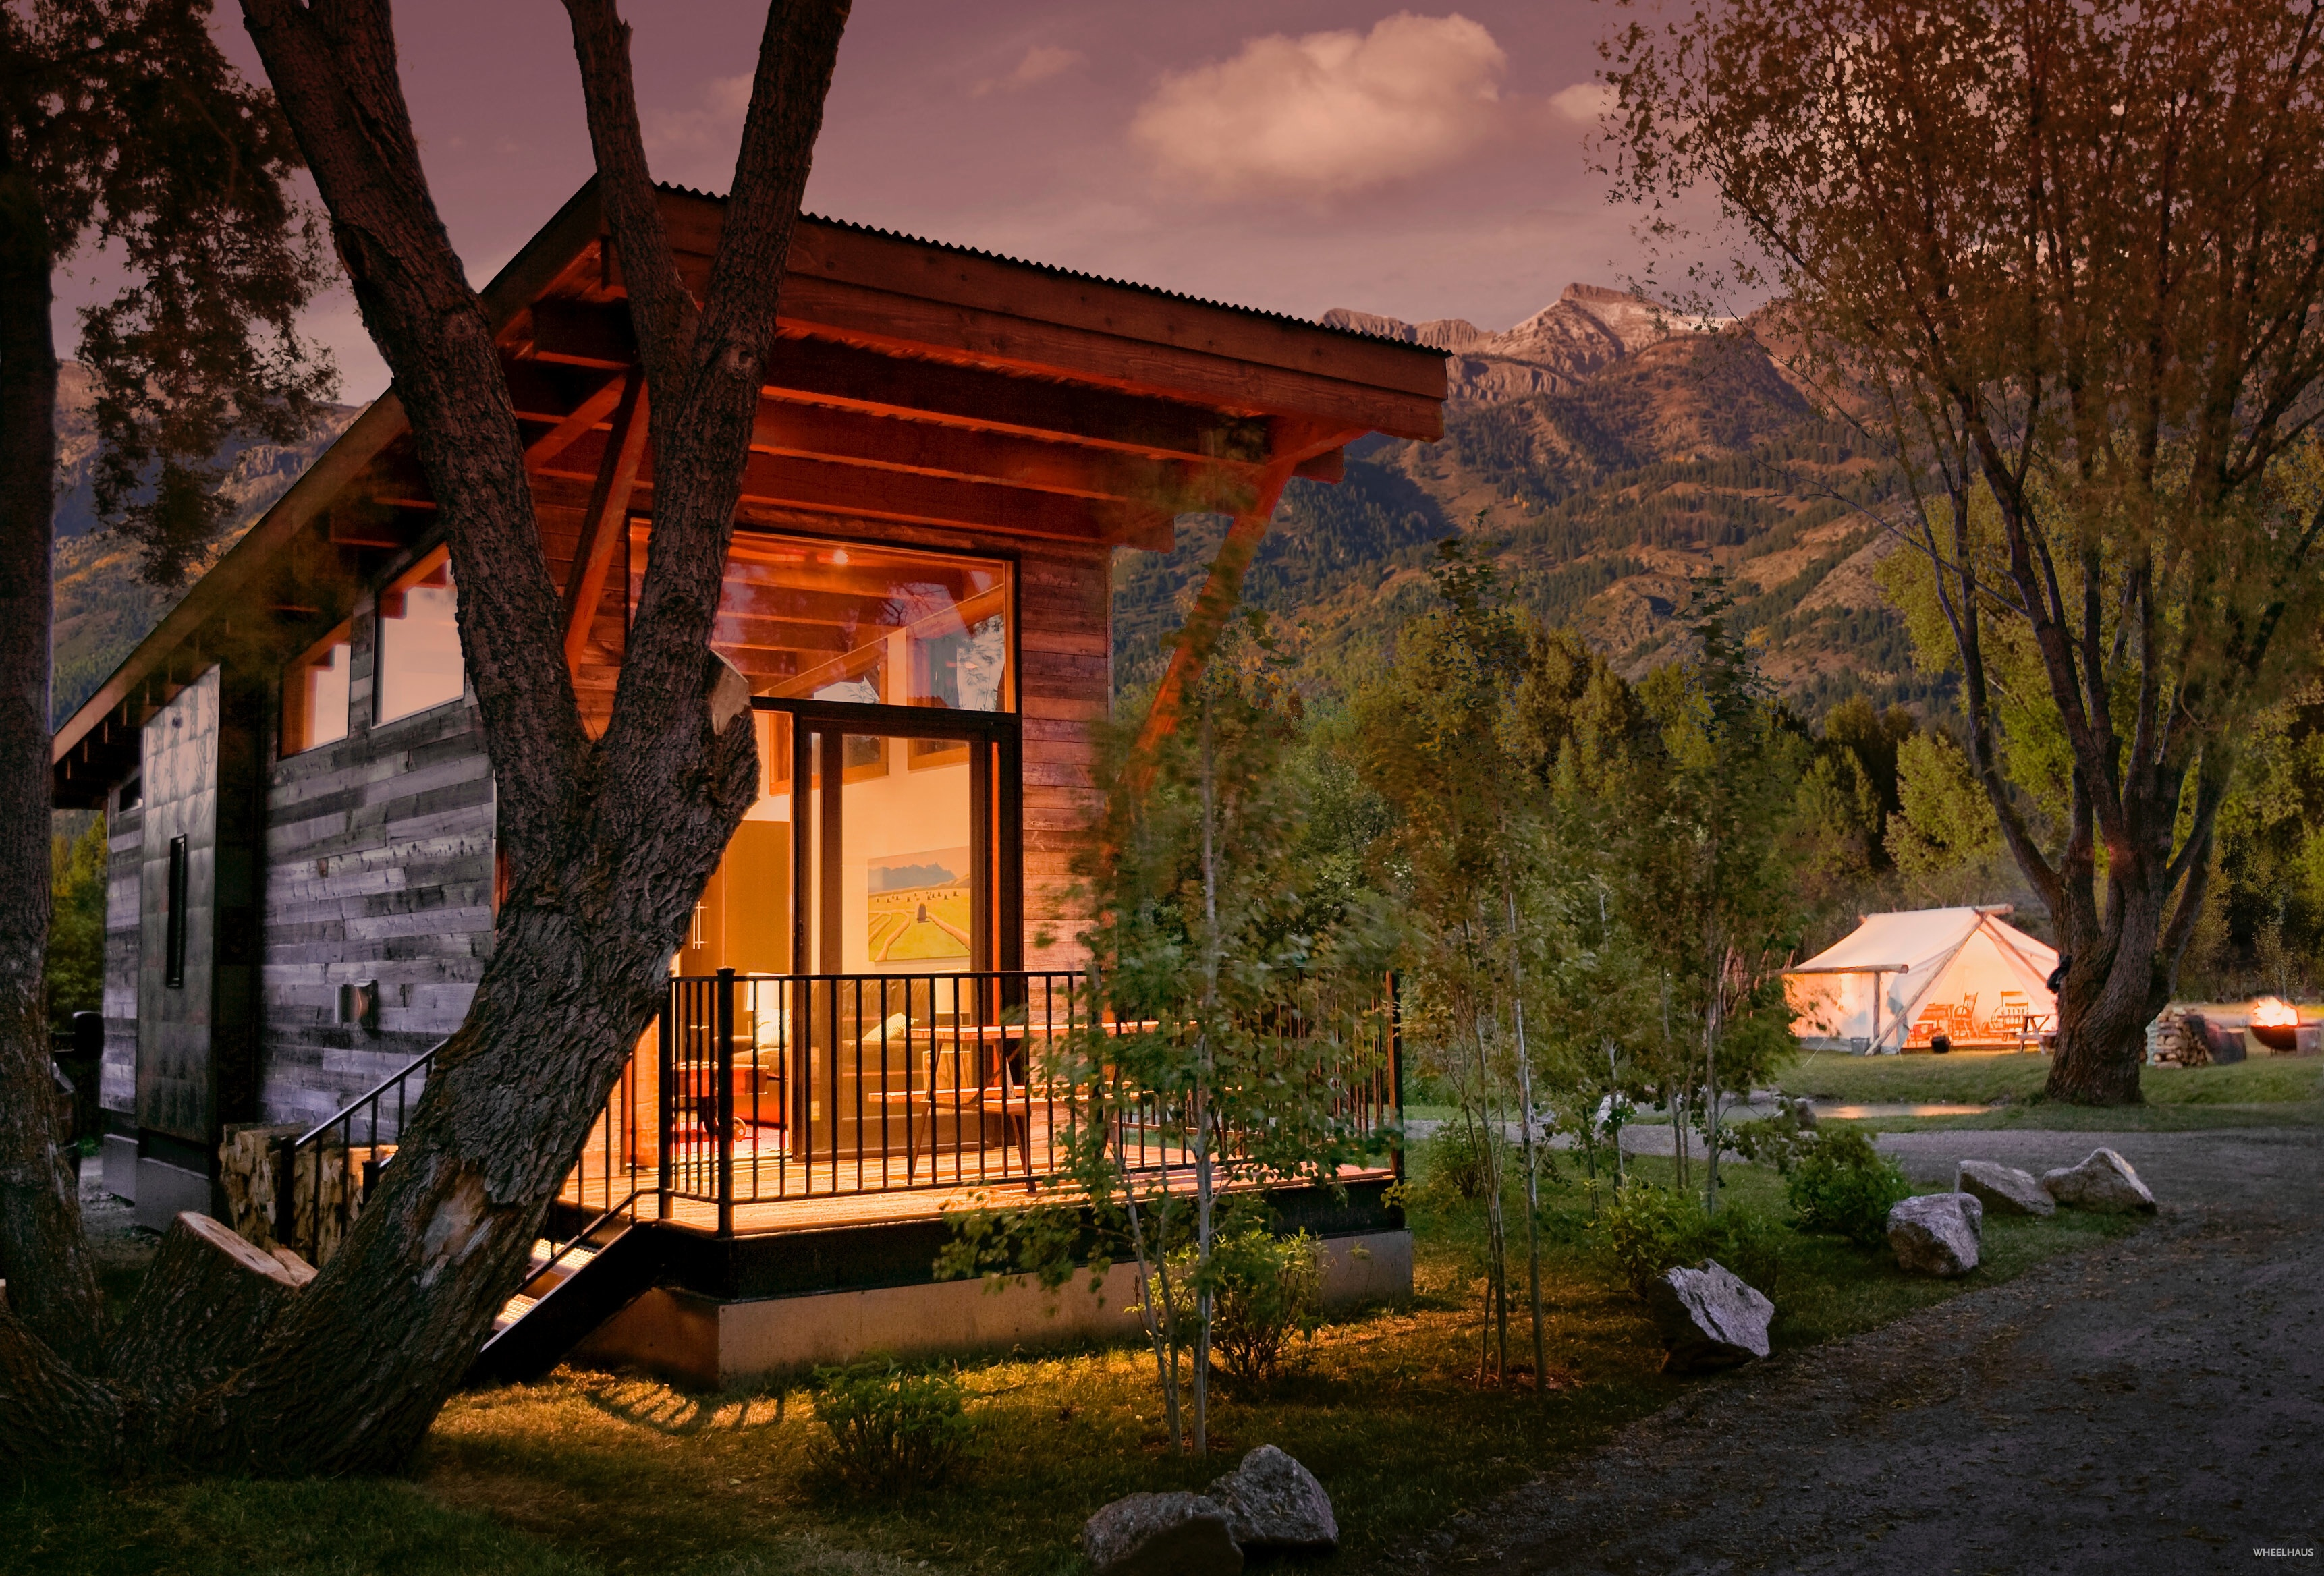 developments aspens townhome miles that hole pines maps area south cabin rentals and located condominium map cabins the jacksonwyoming jackson of are home mountain thumbnail teton resort